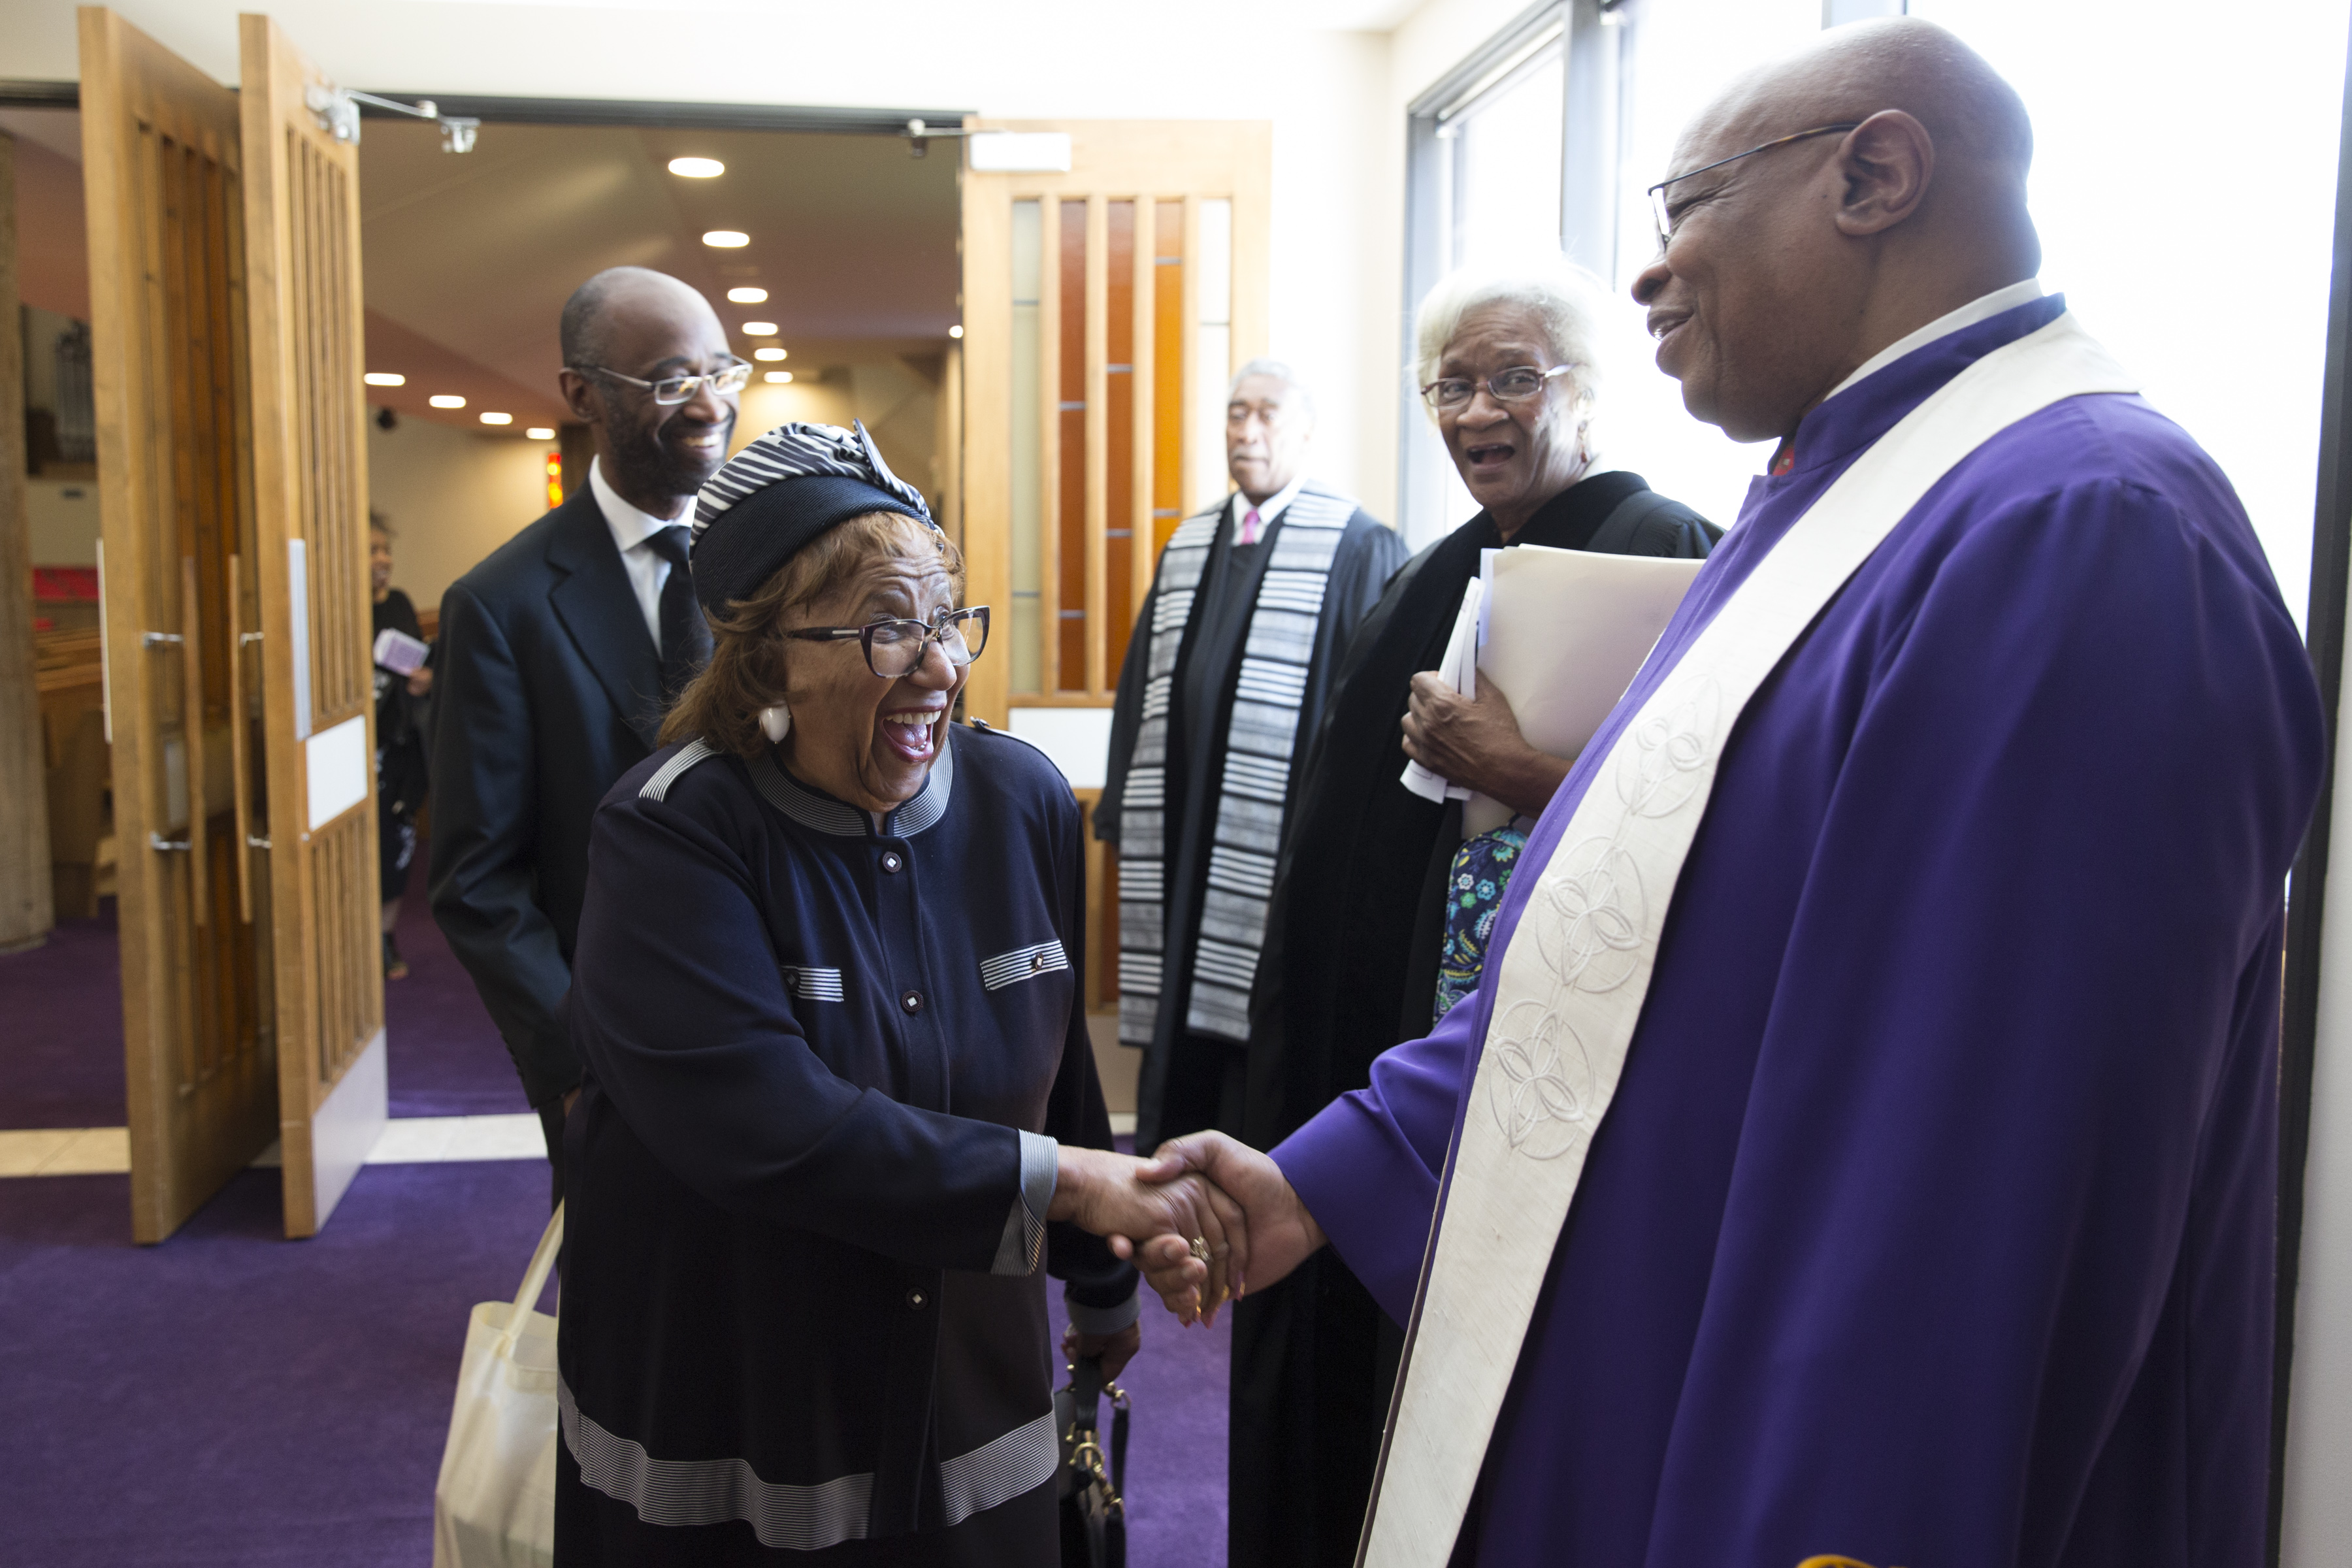 Rev. James Stallings shakes hands with a member of Mount Zion Baptist Church on Sunday, May 27, 2018.